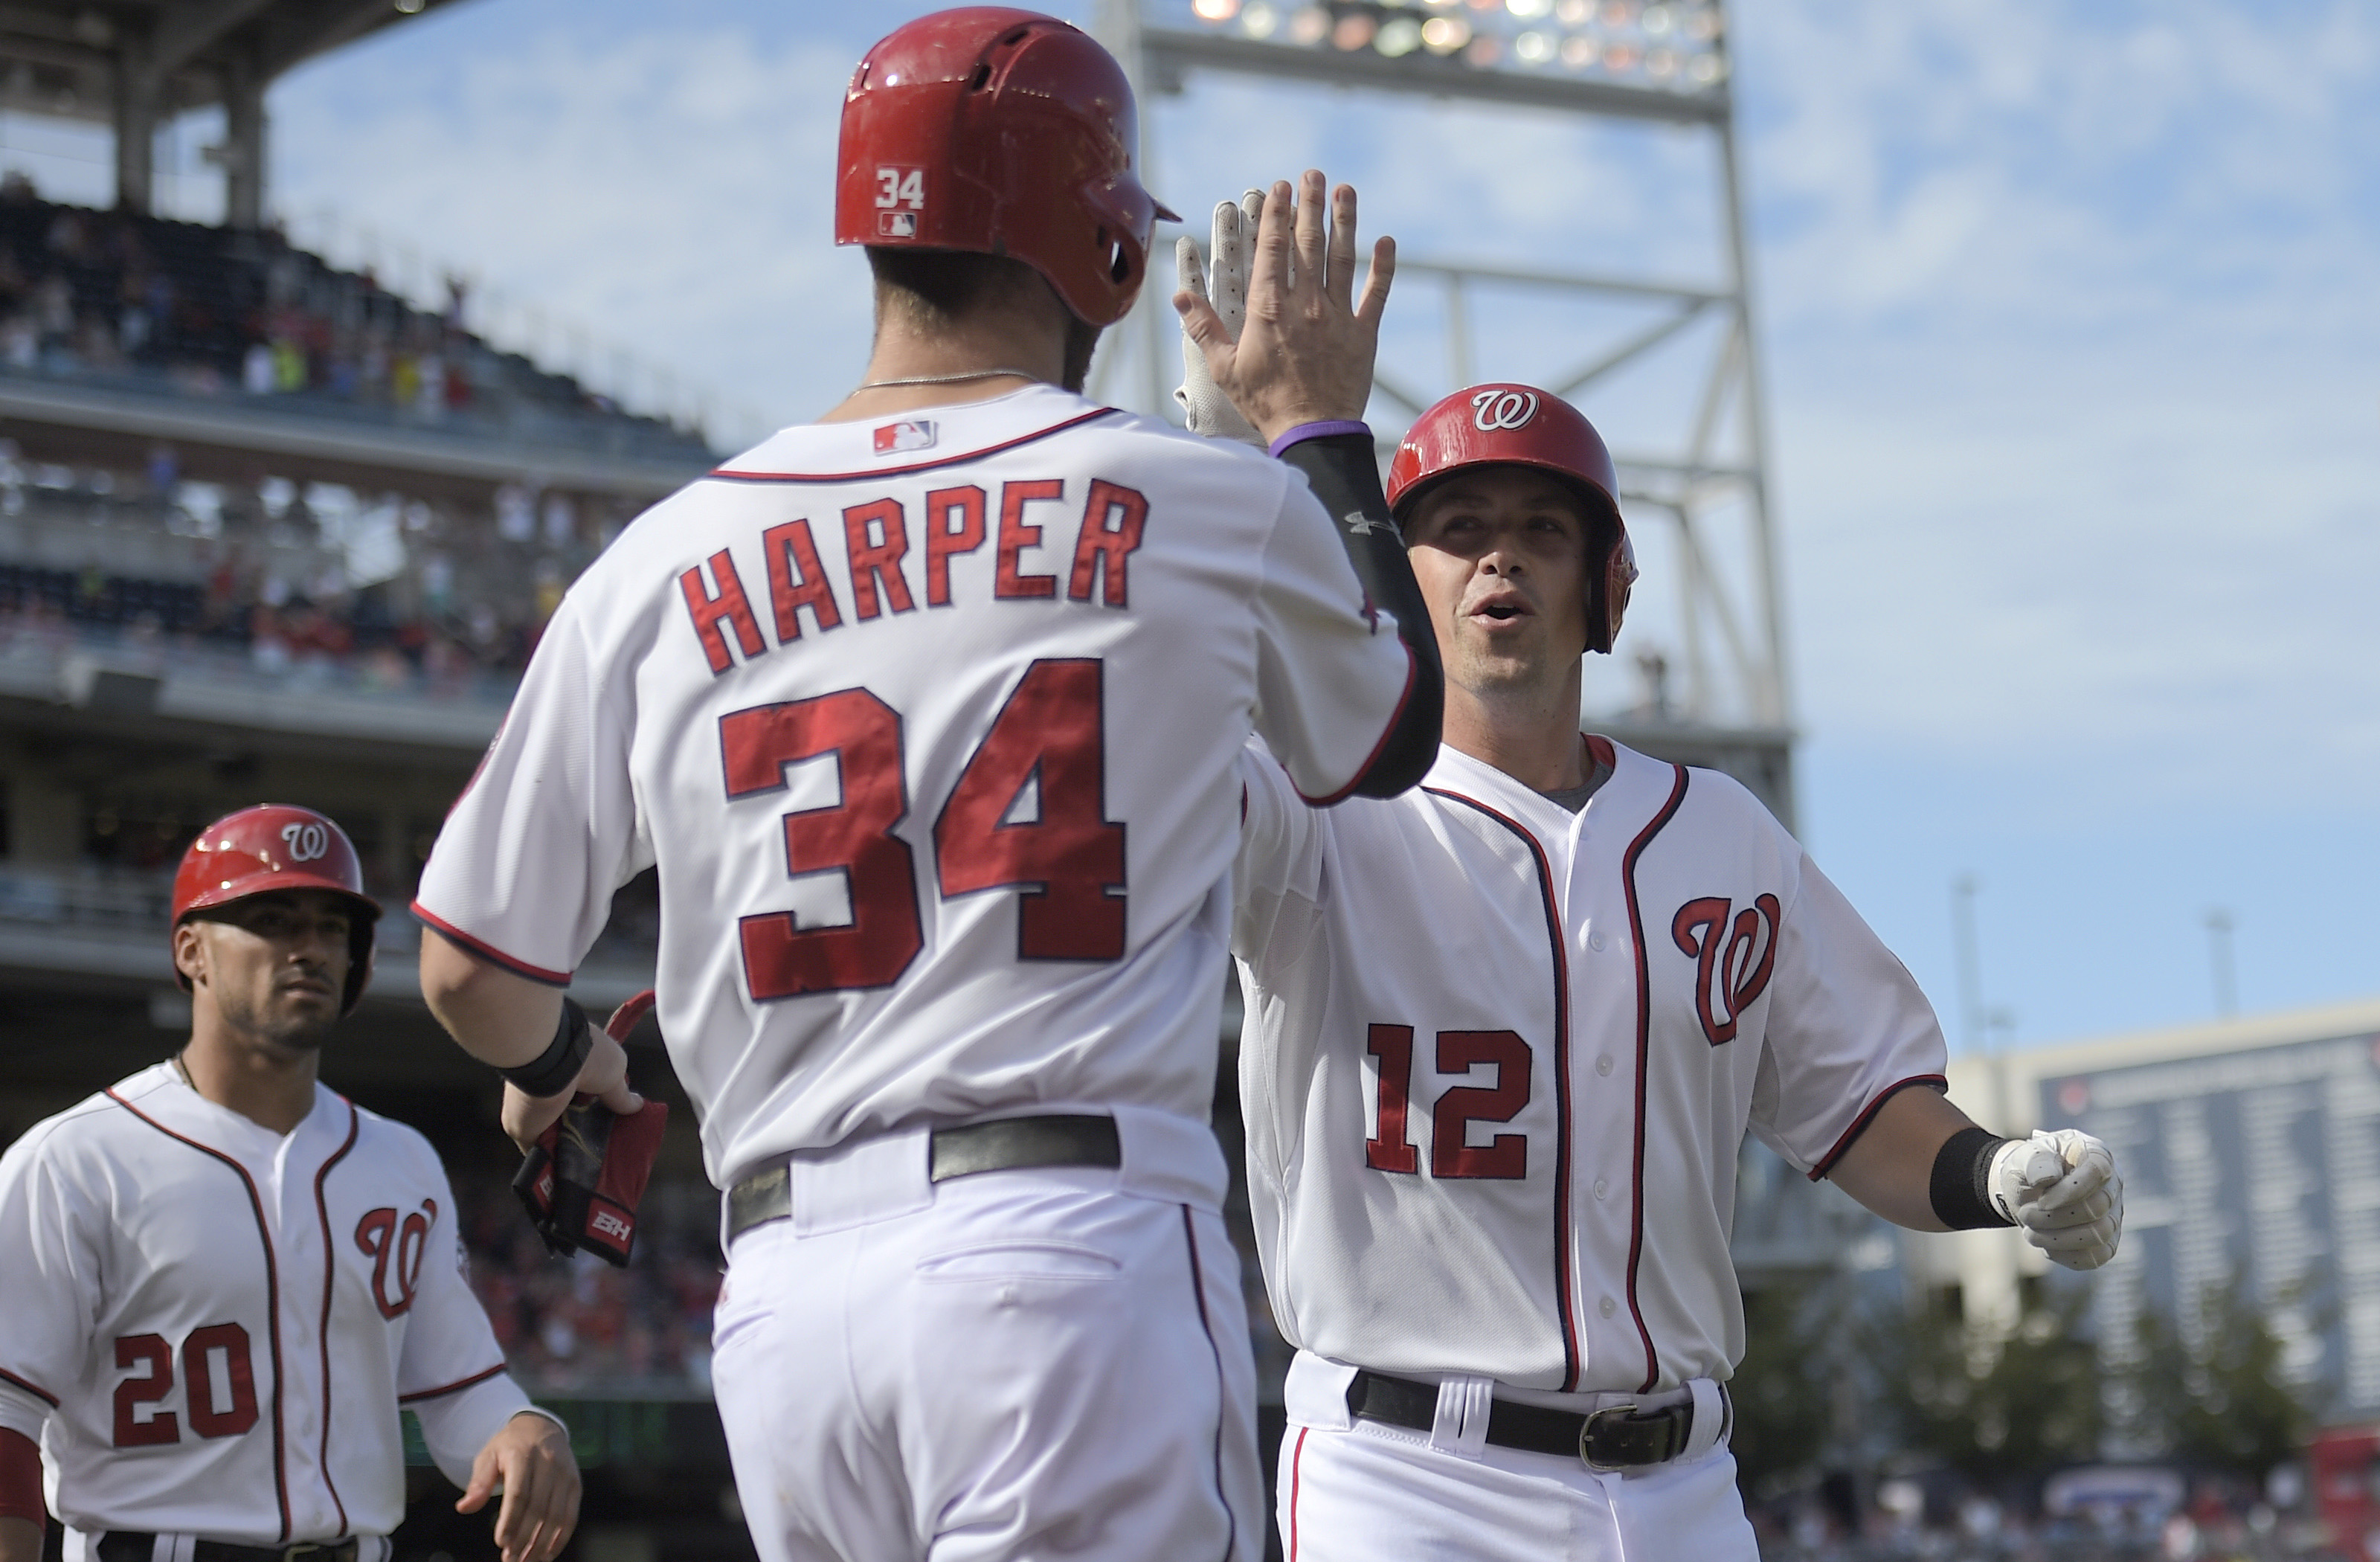 Washington Nationals' Tyler Moore (12) celebrates his three-run home run with Bryce Harper (34) during the sixth inning of a baseball game against the Miami Marlins, Sunday, Sept. 20, 2015, in Washington. Also seen is Washington Nationals' Ian Desmond. (A